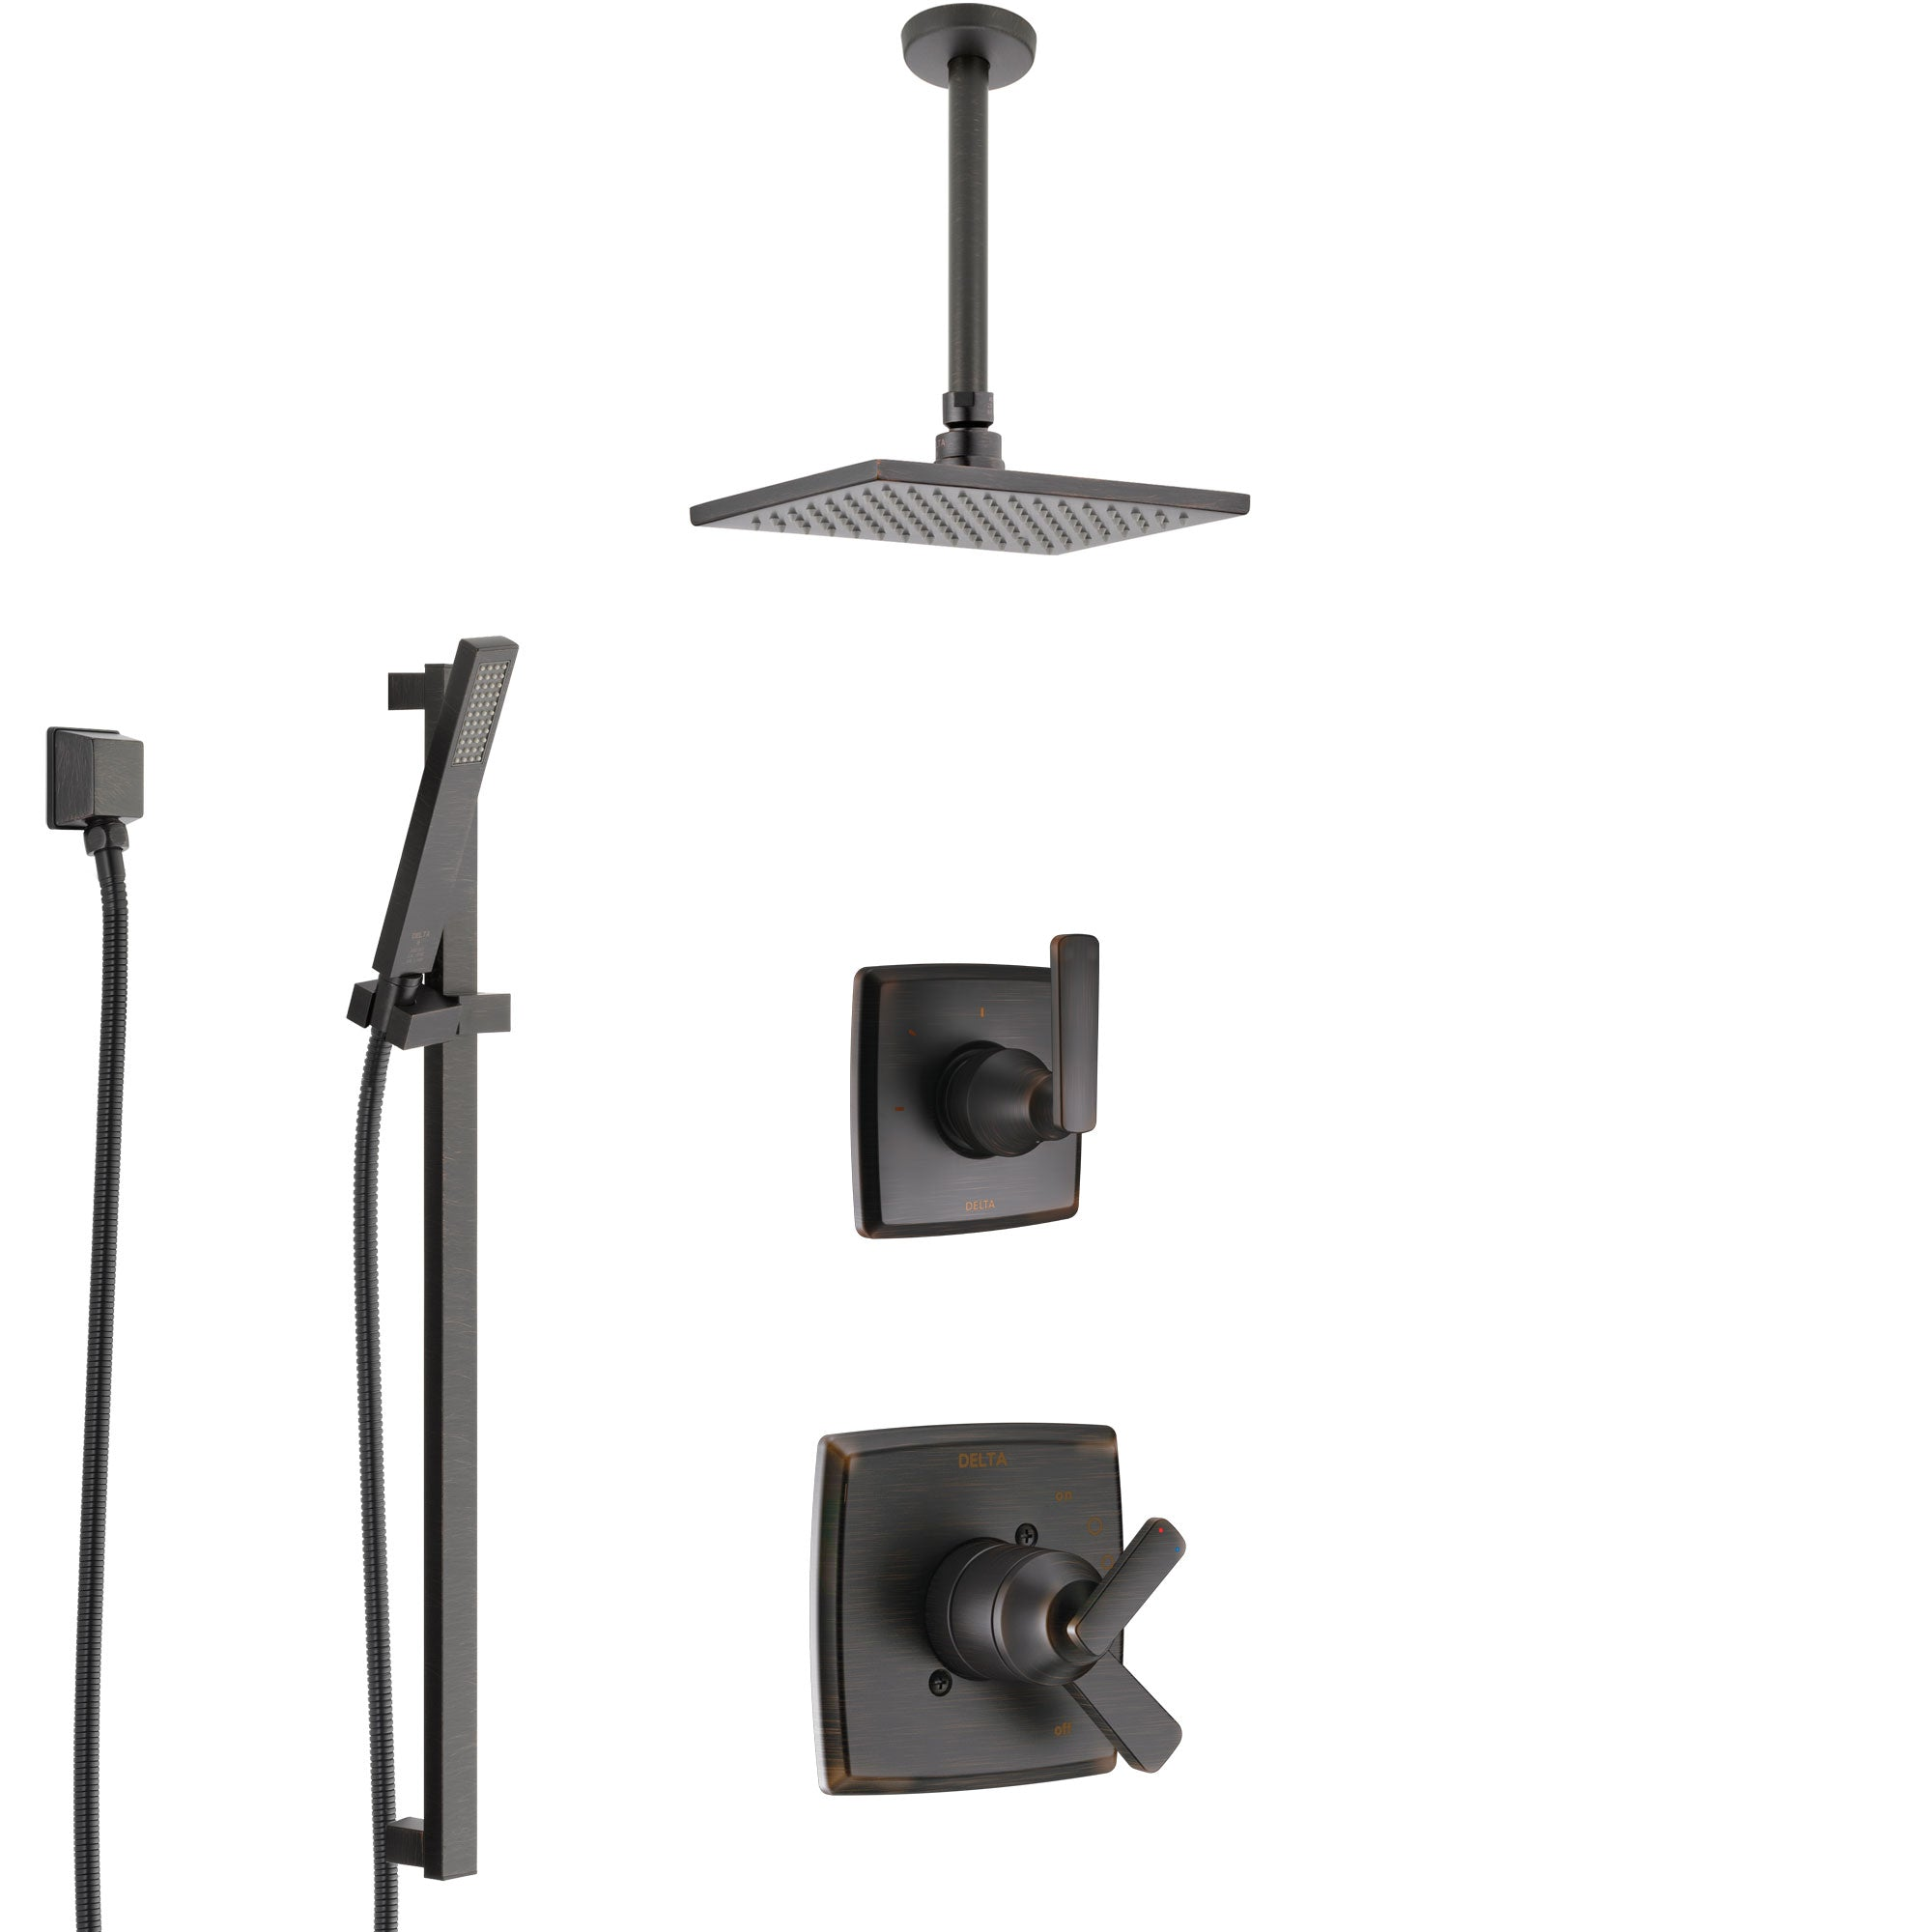 Delta Ashlyn Venetian Bronze Shower System with Dual Control Handle, Diverter, Ceiling Mount Showerhead, and Hand Shower with Slidebar SS1764RB7